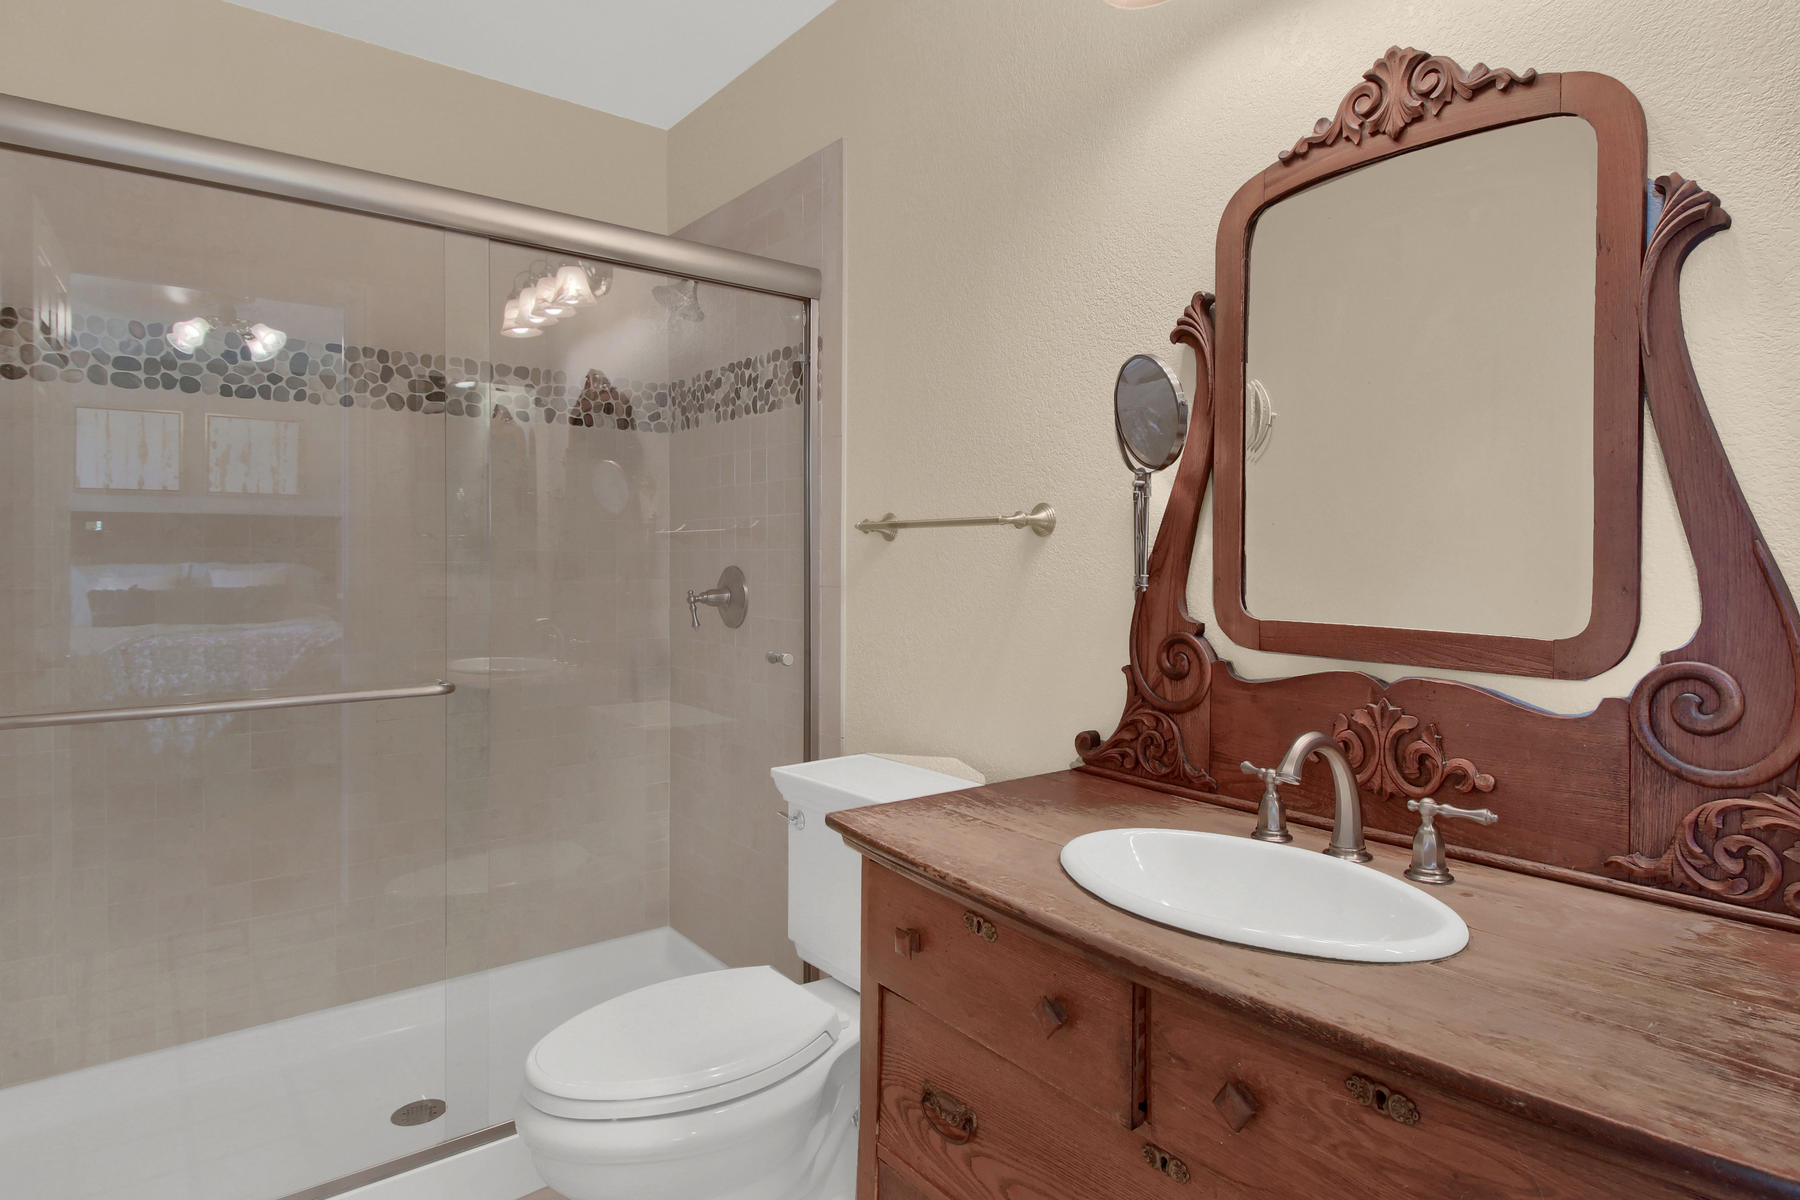 310 W Prestwick Way Castle-032-25-Bathroom-MLS_Size.jpg